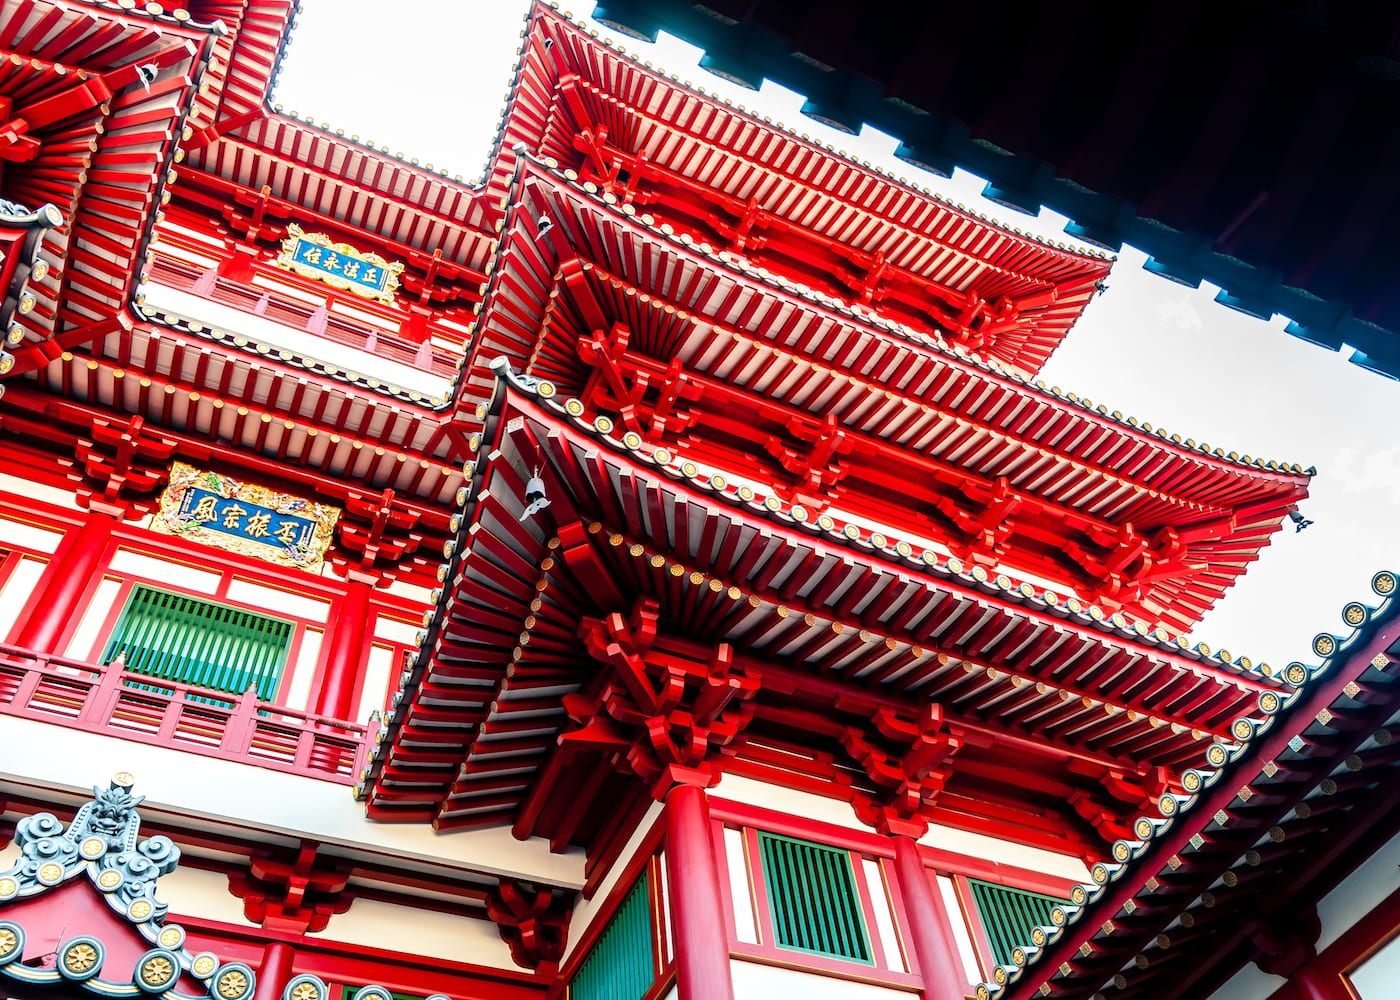 Singapore's 12 best Buddhist, Hindu and Taoist temples to see with the family